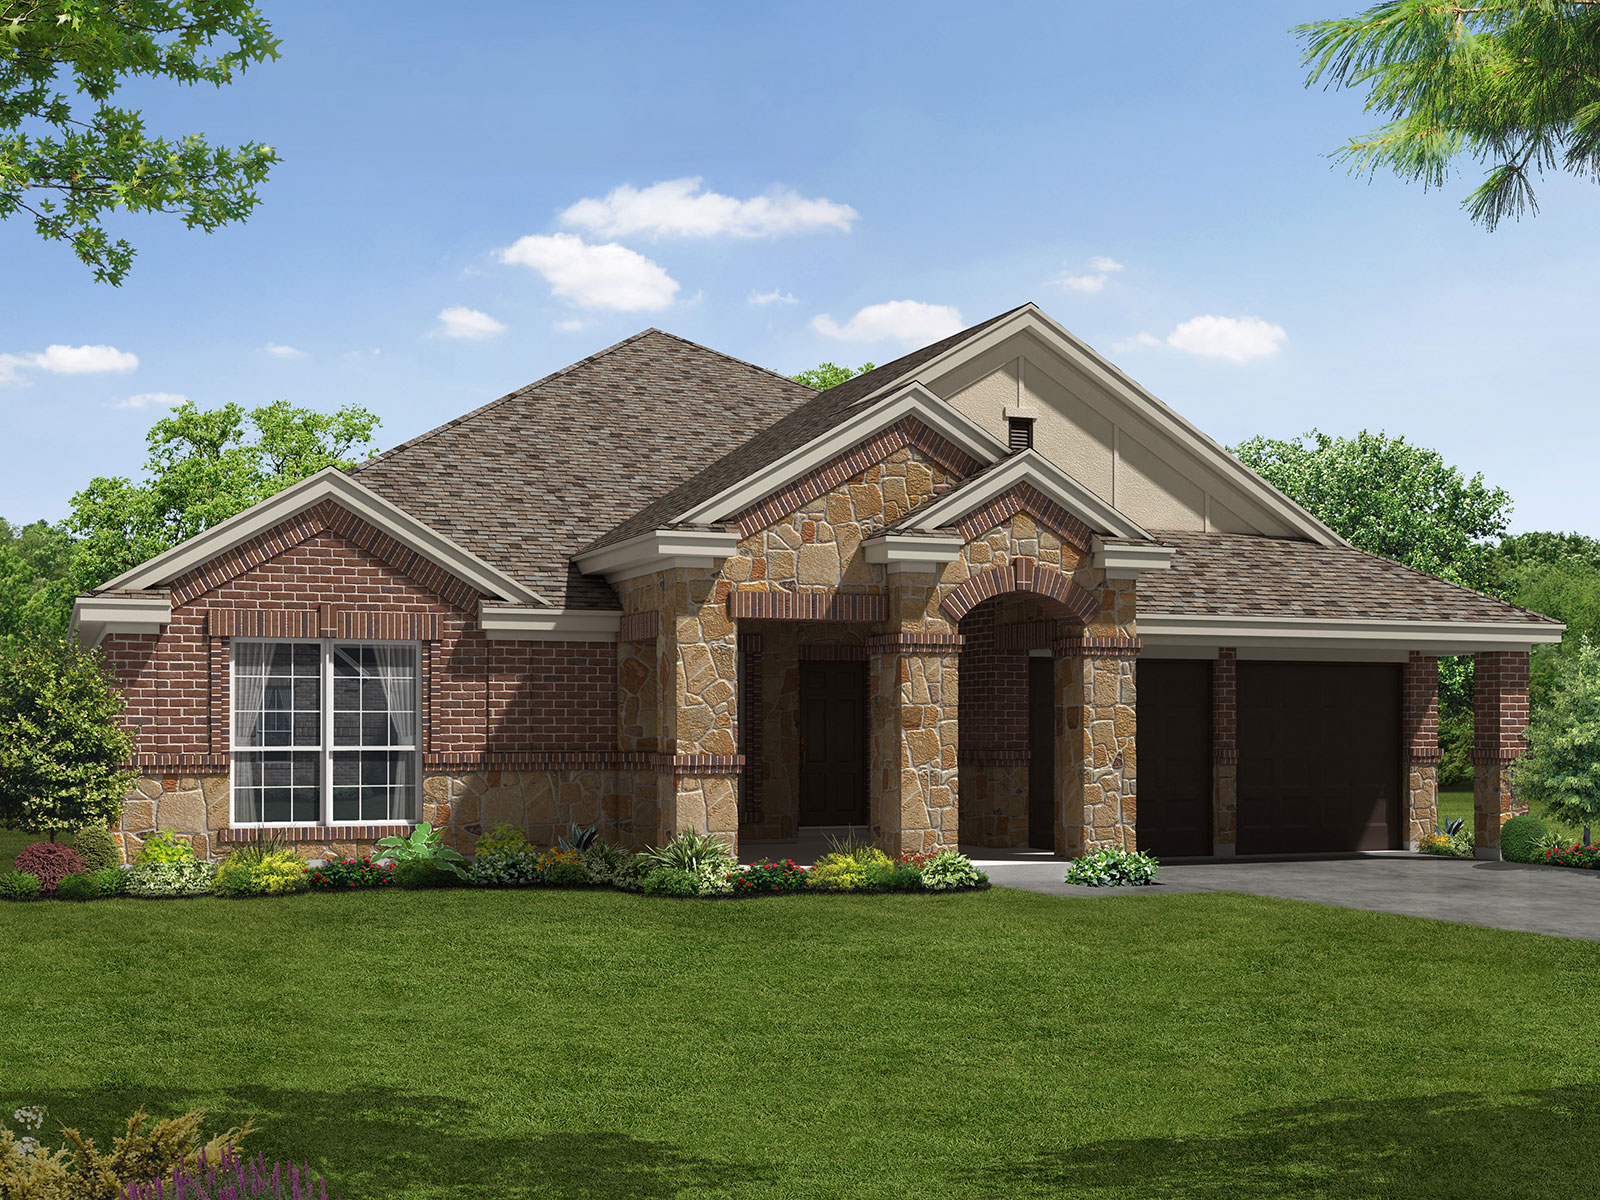 The devonshire 6891 model 4br 2ba homes for sale in for Houston house elevation